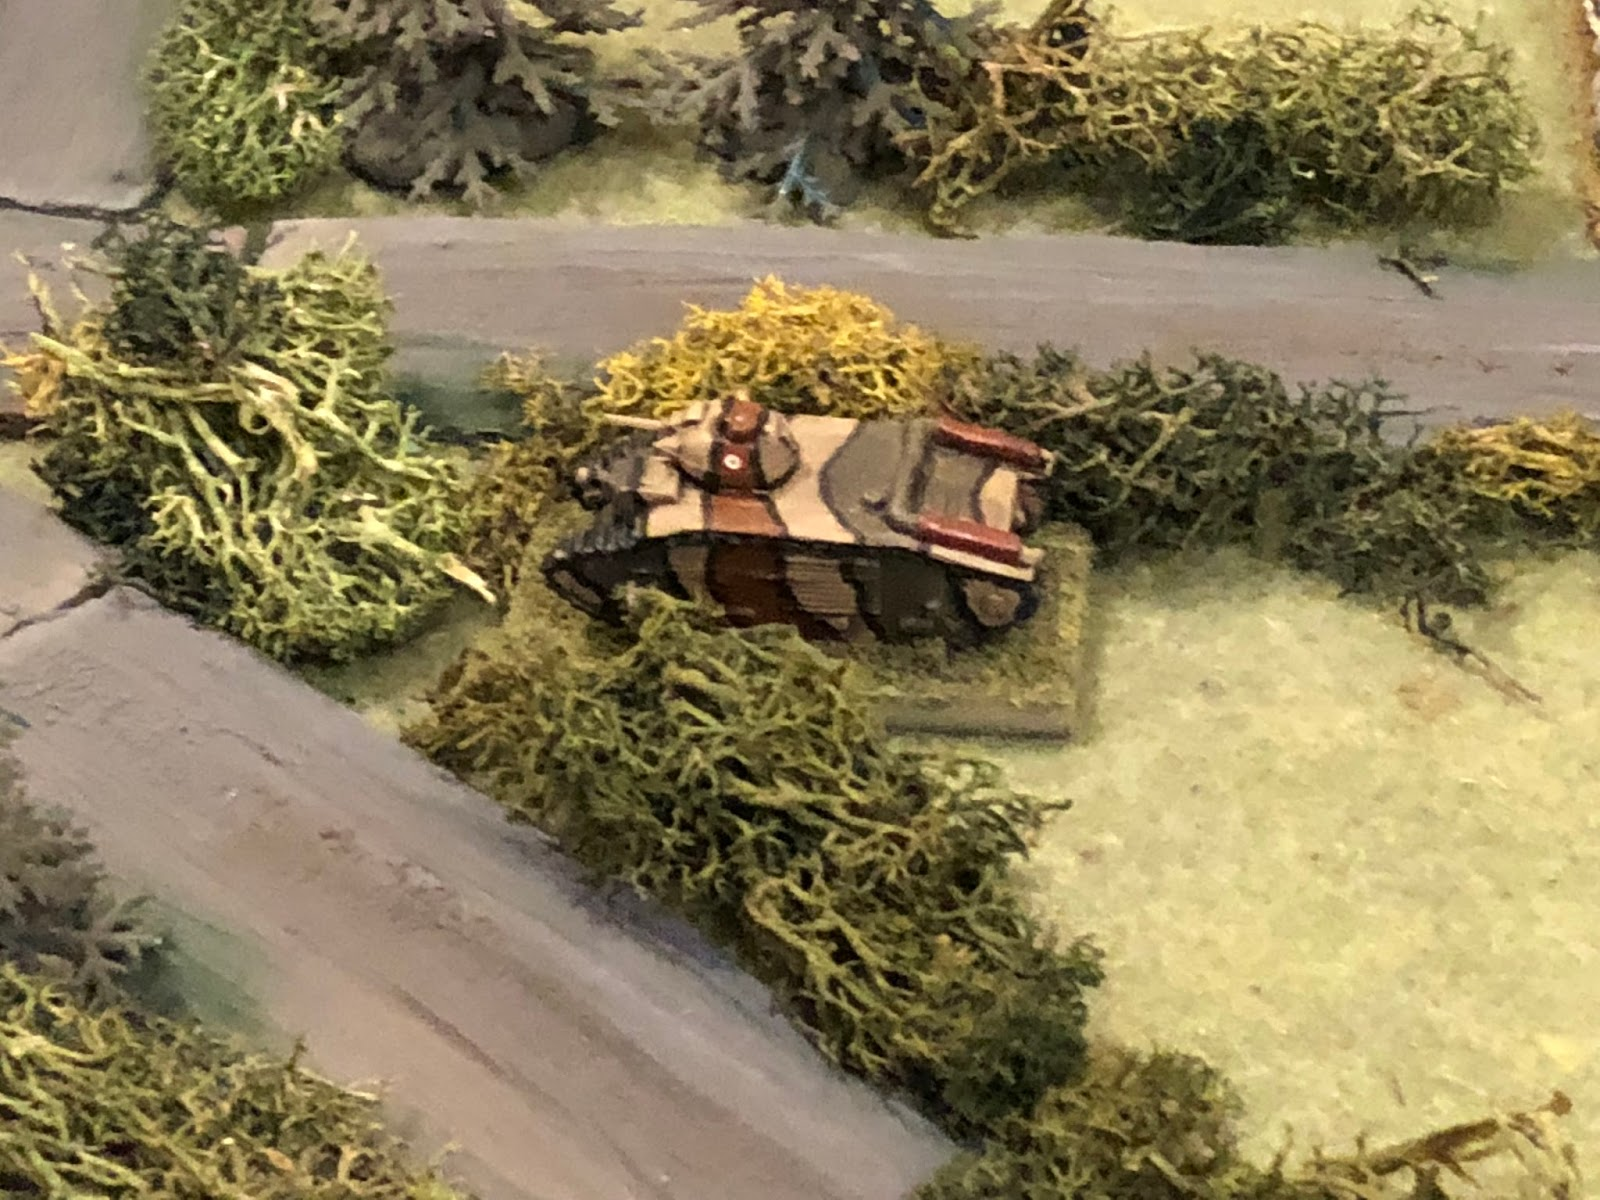 """Contact, enemy tank at the crossroads!!!""  Just so we're all on the same page, I told my boy he's only got one tank, but the Germans can't harm it from the front, that he needed to protect it's flanks and rear, though the Germans could pin/suppress the crew with fire from the front."